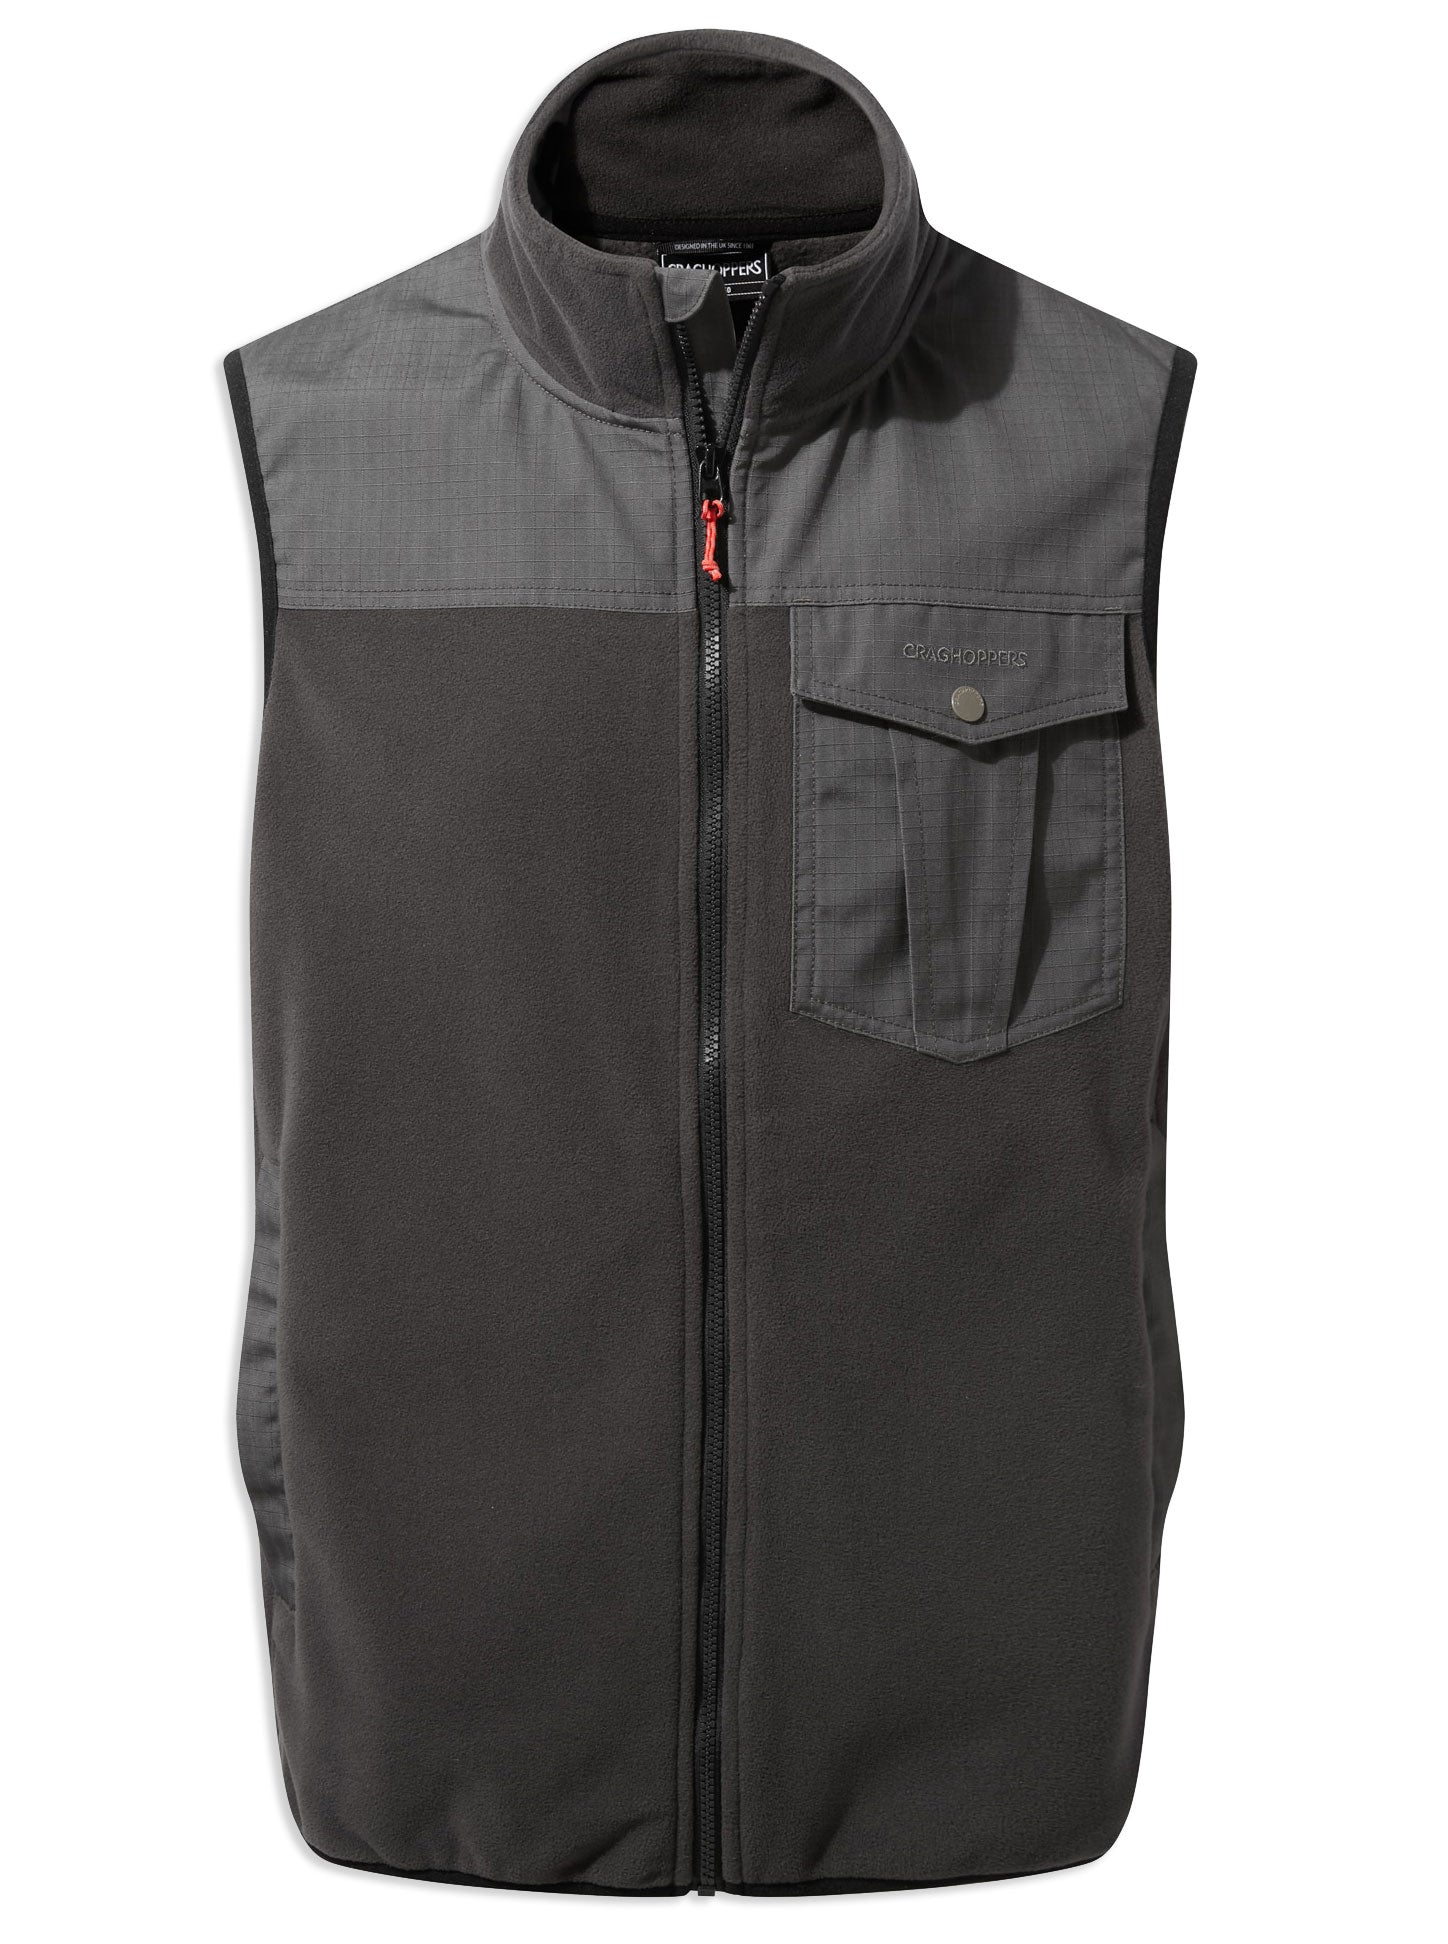 Craghoppers Dillon Micro Fleece Gilet vest Black Pepper